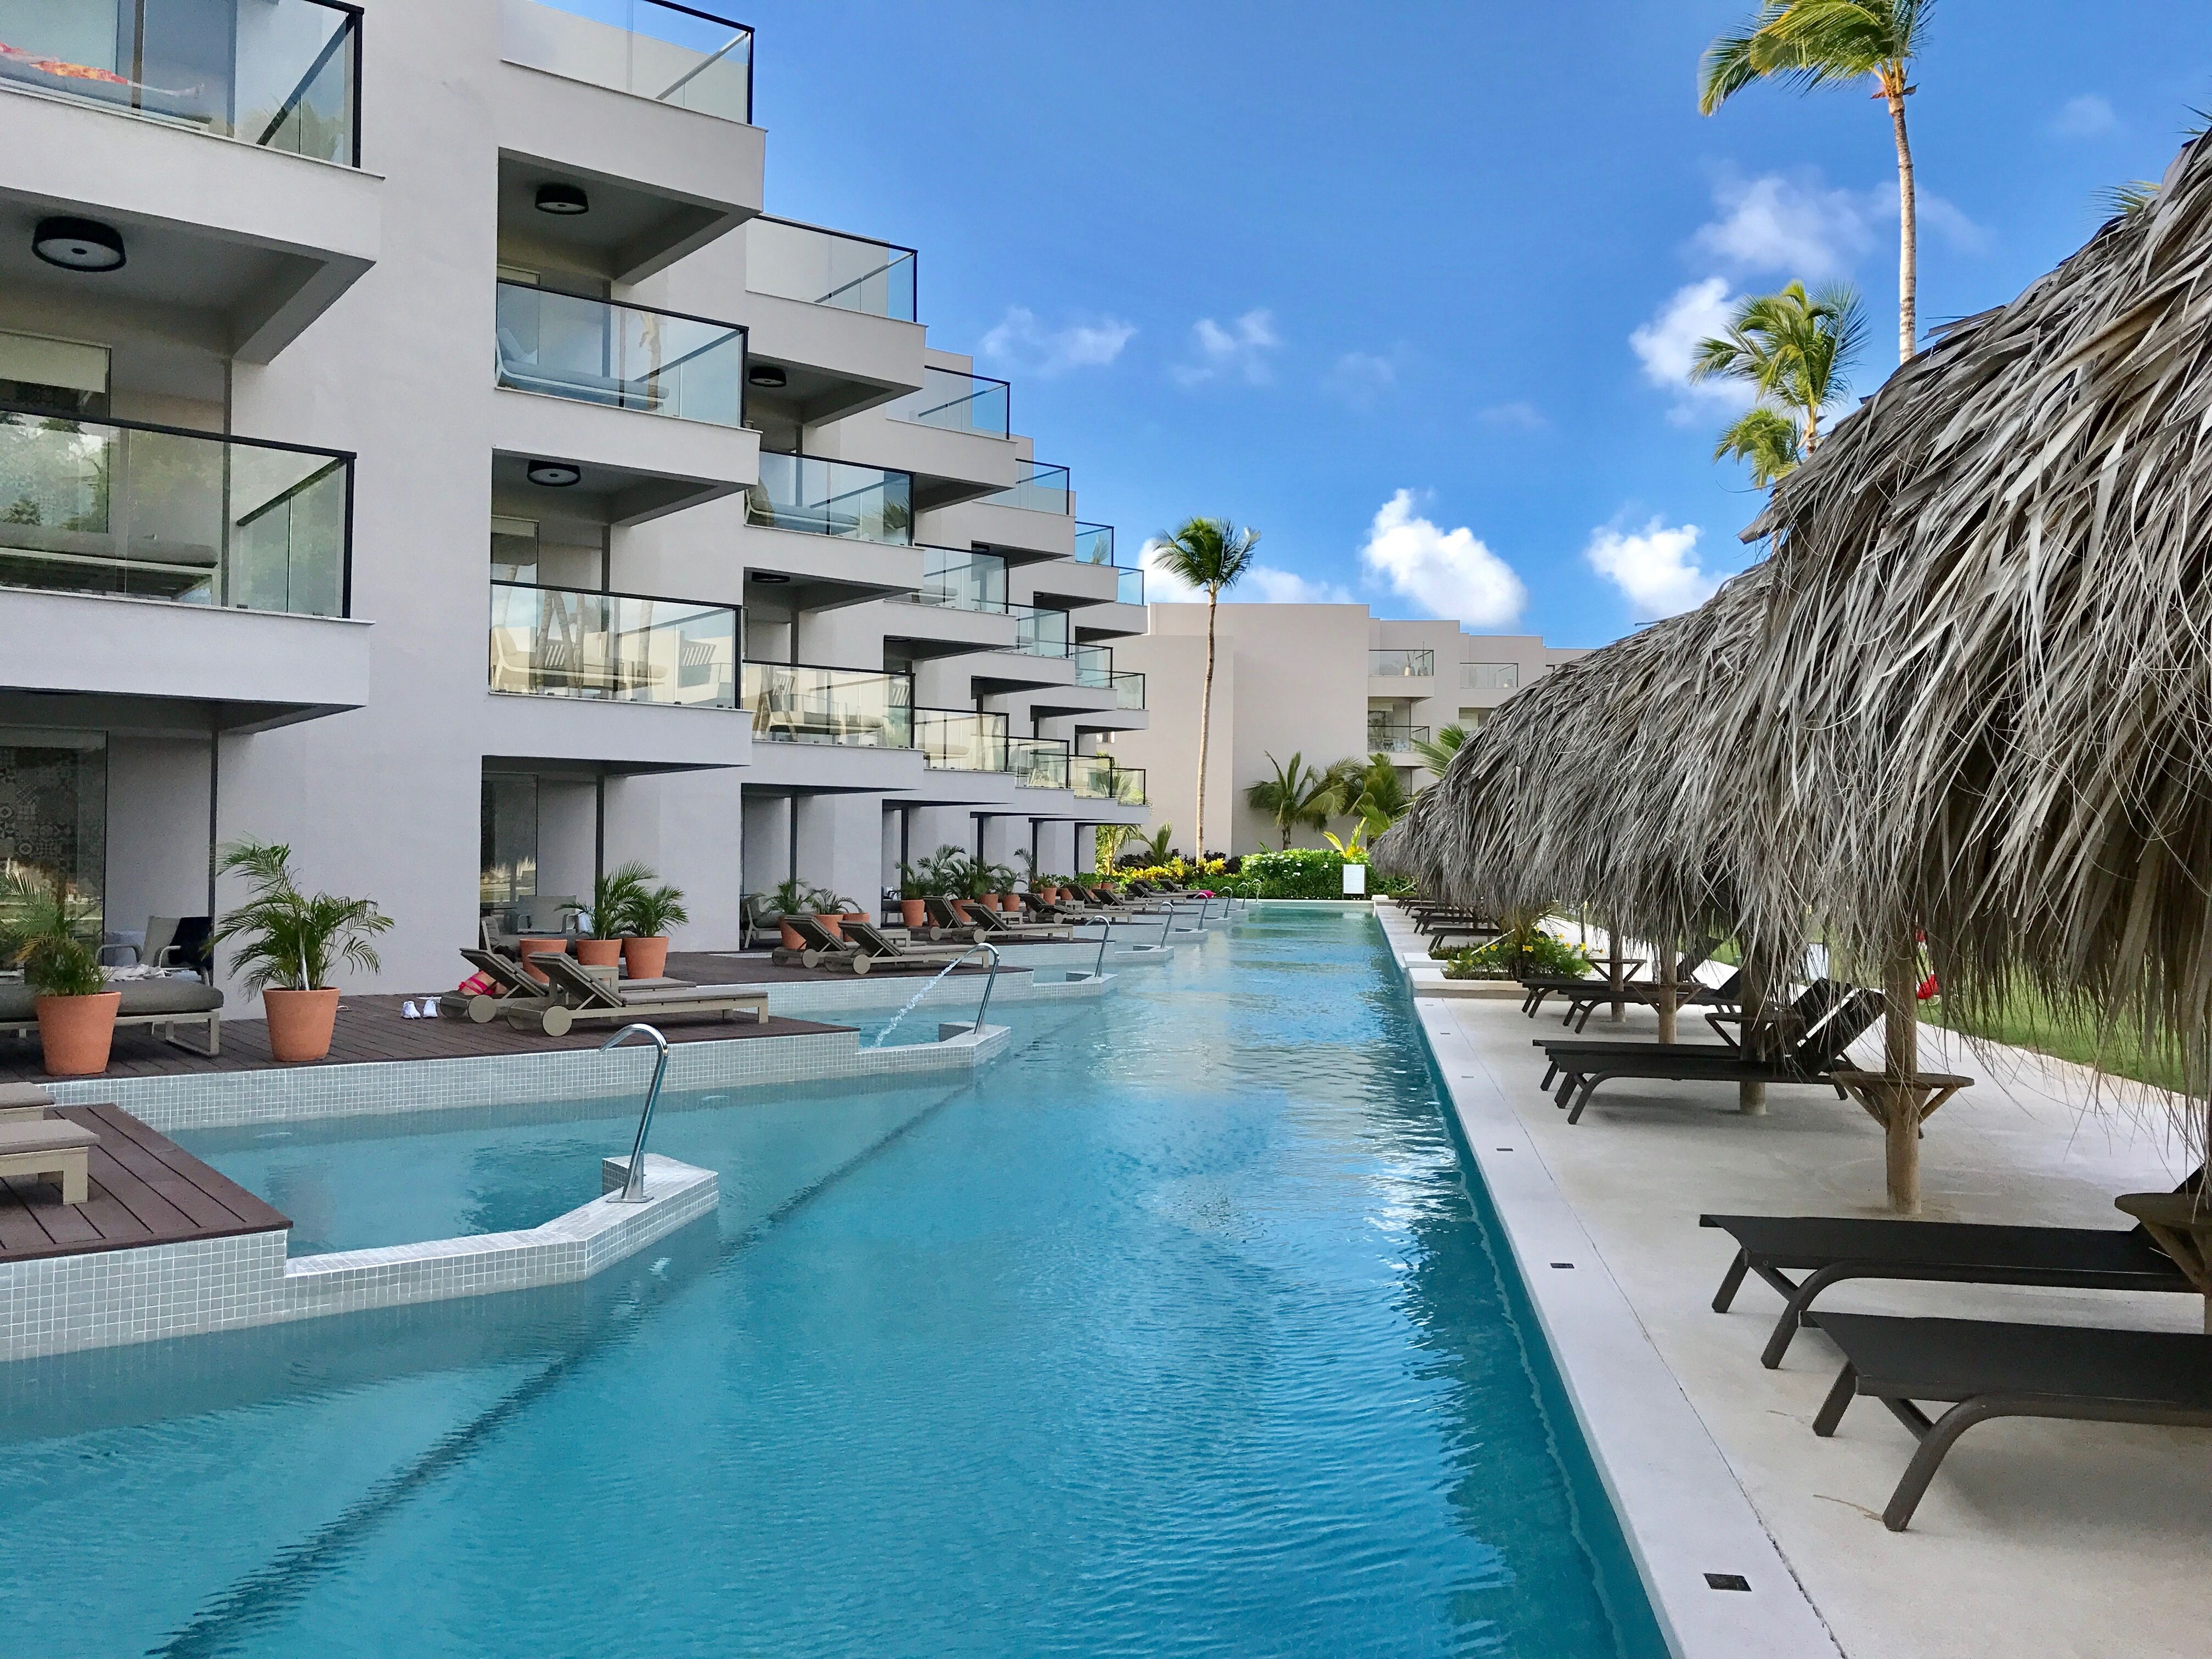 Swim Up Suites At Excellence El Carmen Excellence Resorts Romantic Vacations Favorite Vacation